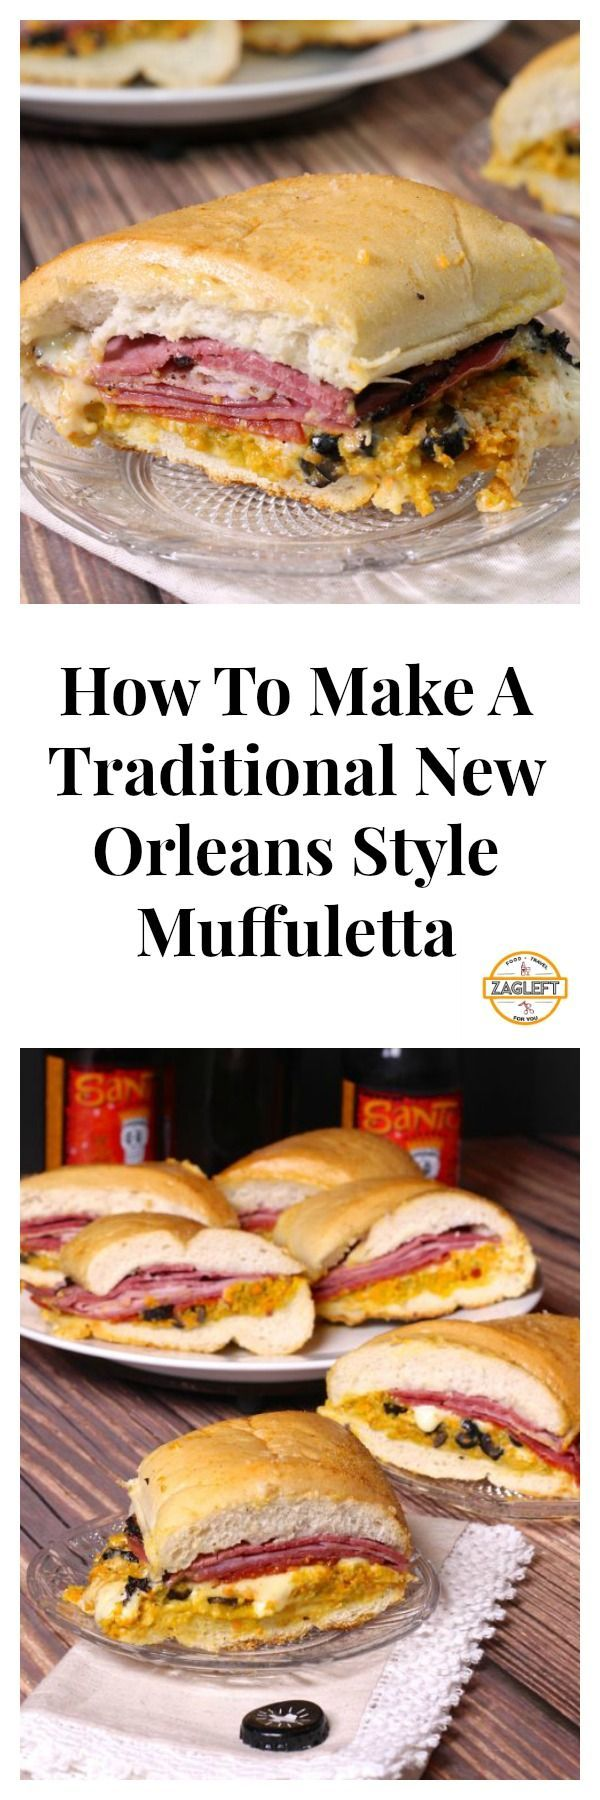 This traditional New Orleans Muffuletta recipe is a favorite of ours. Layers of meats, cheese and a special olive salad piled high onto sturdy Italian bread.